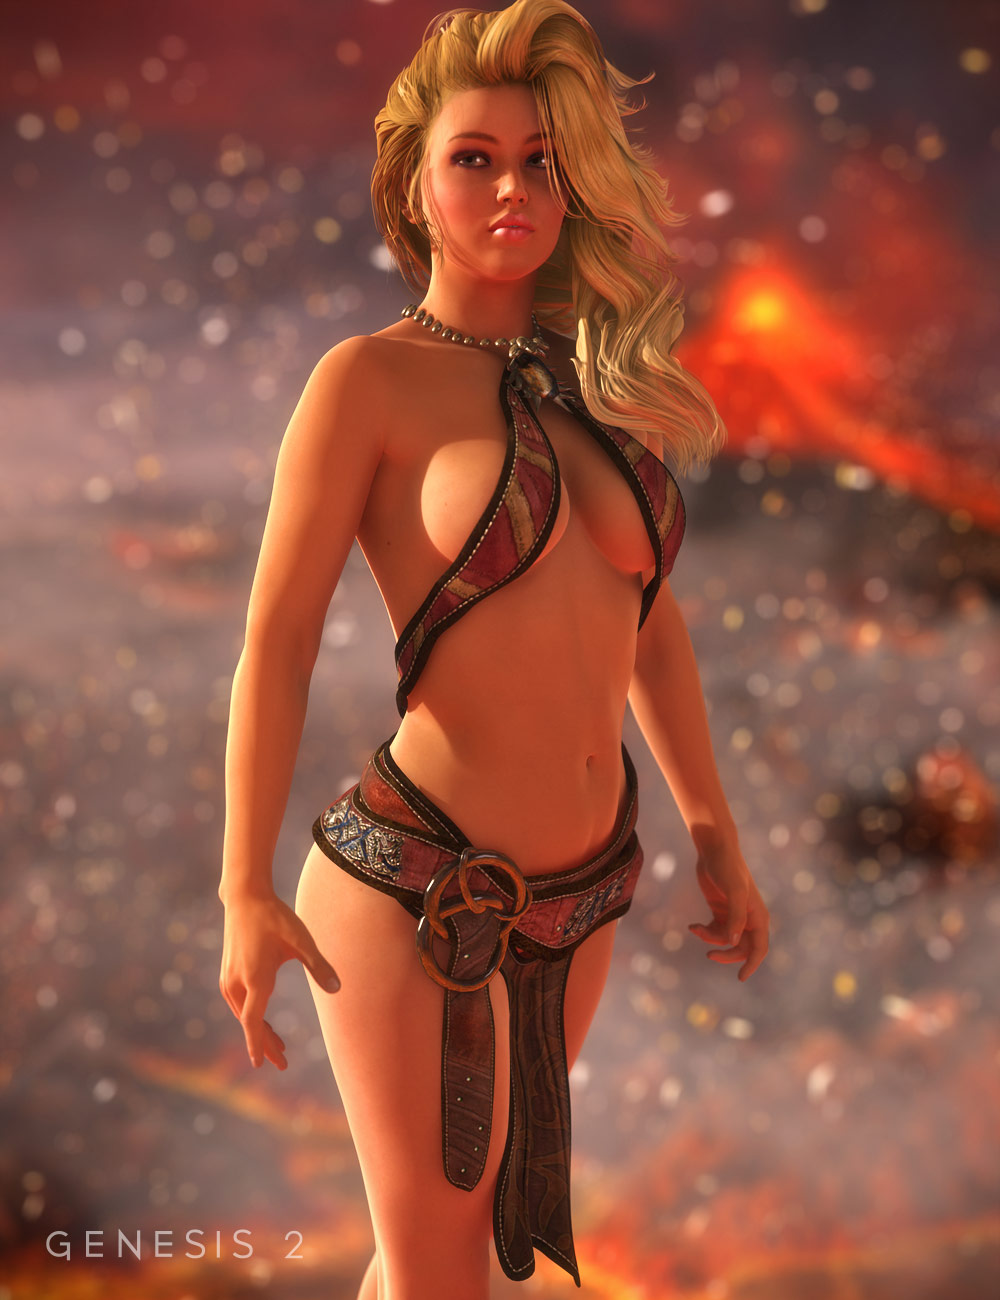 Prehistoric Princess for Genesis 2 Female(s) by: Barbara BrundonSarsa, 3D Models by Daz 3D